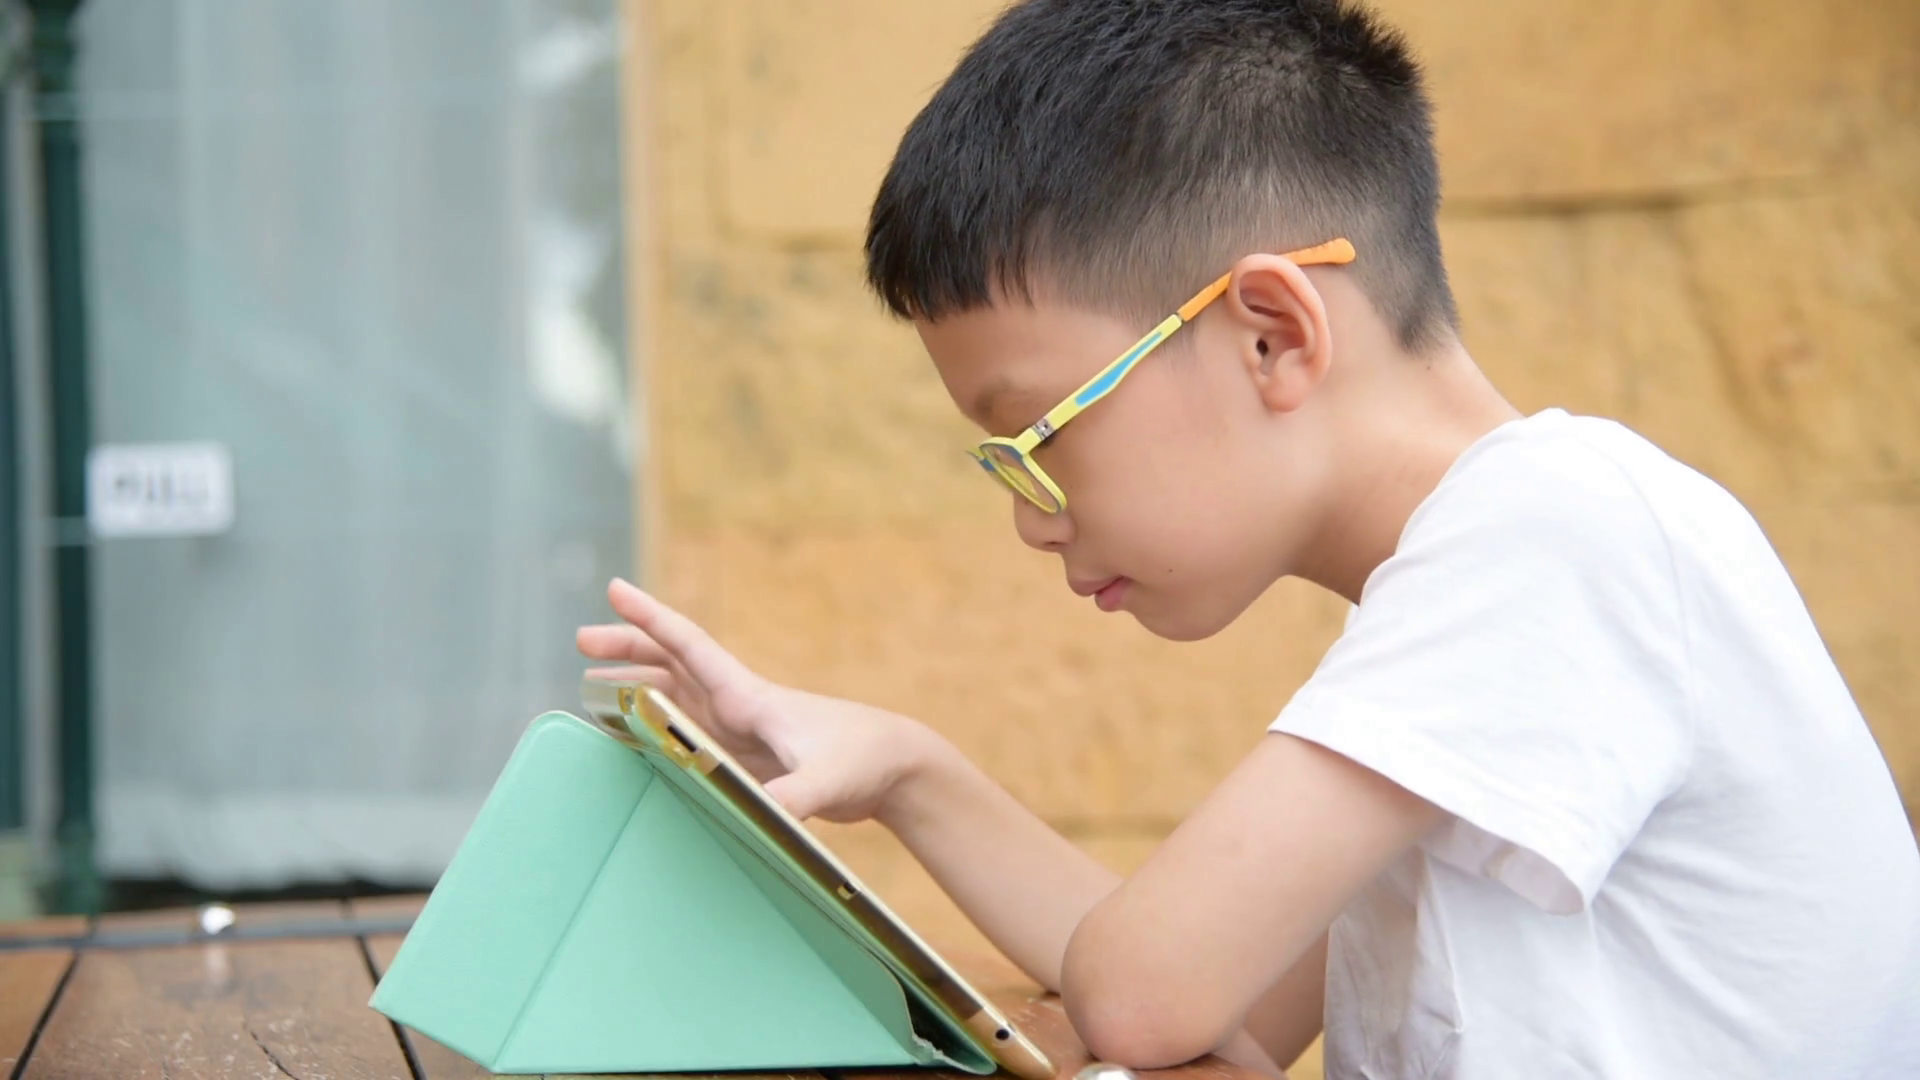 young-asian-boy-playing-games-on-tablet-computer_h5bwr783_thumbnail-full01.png